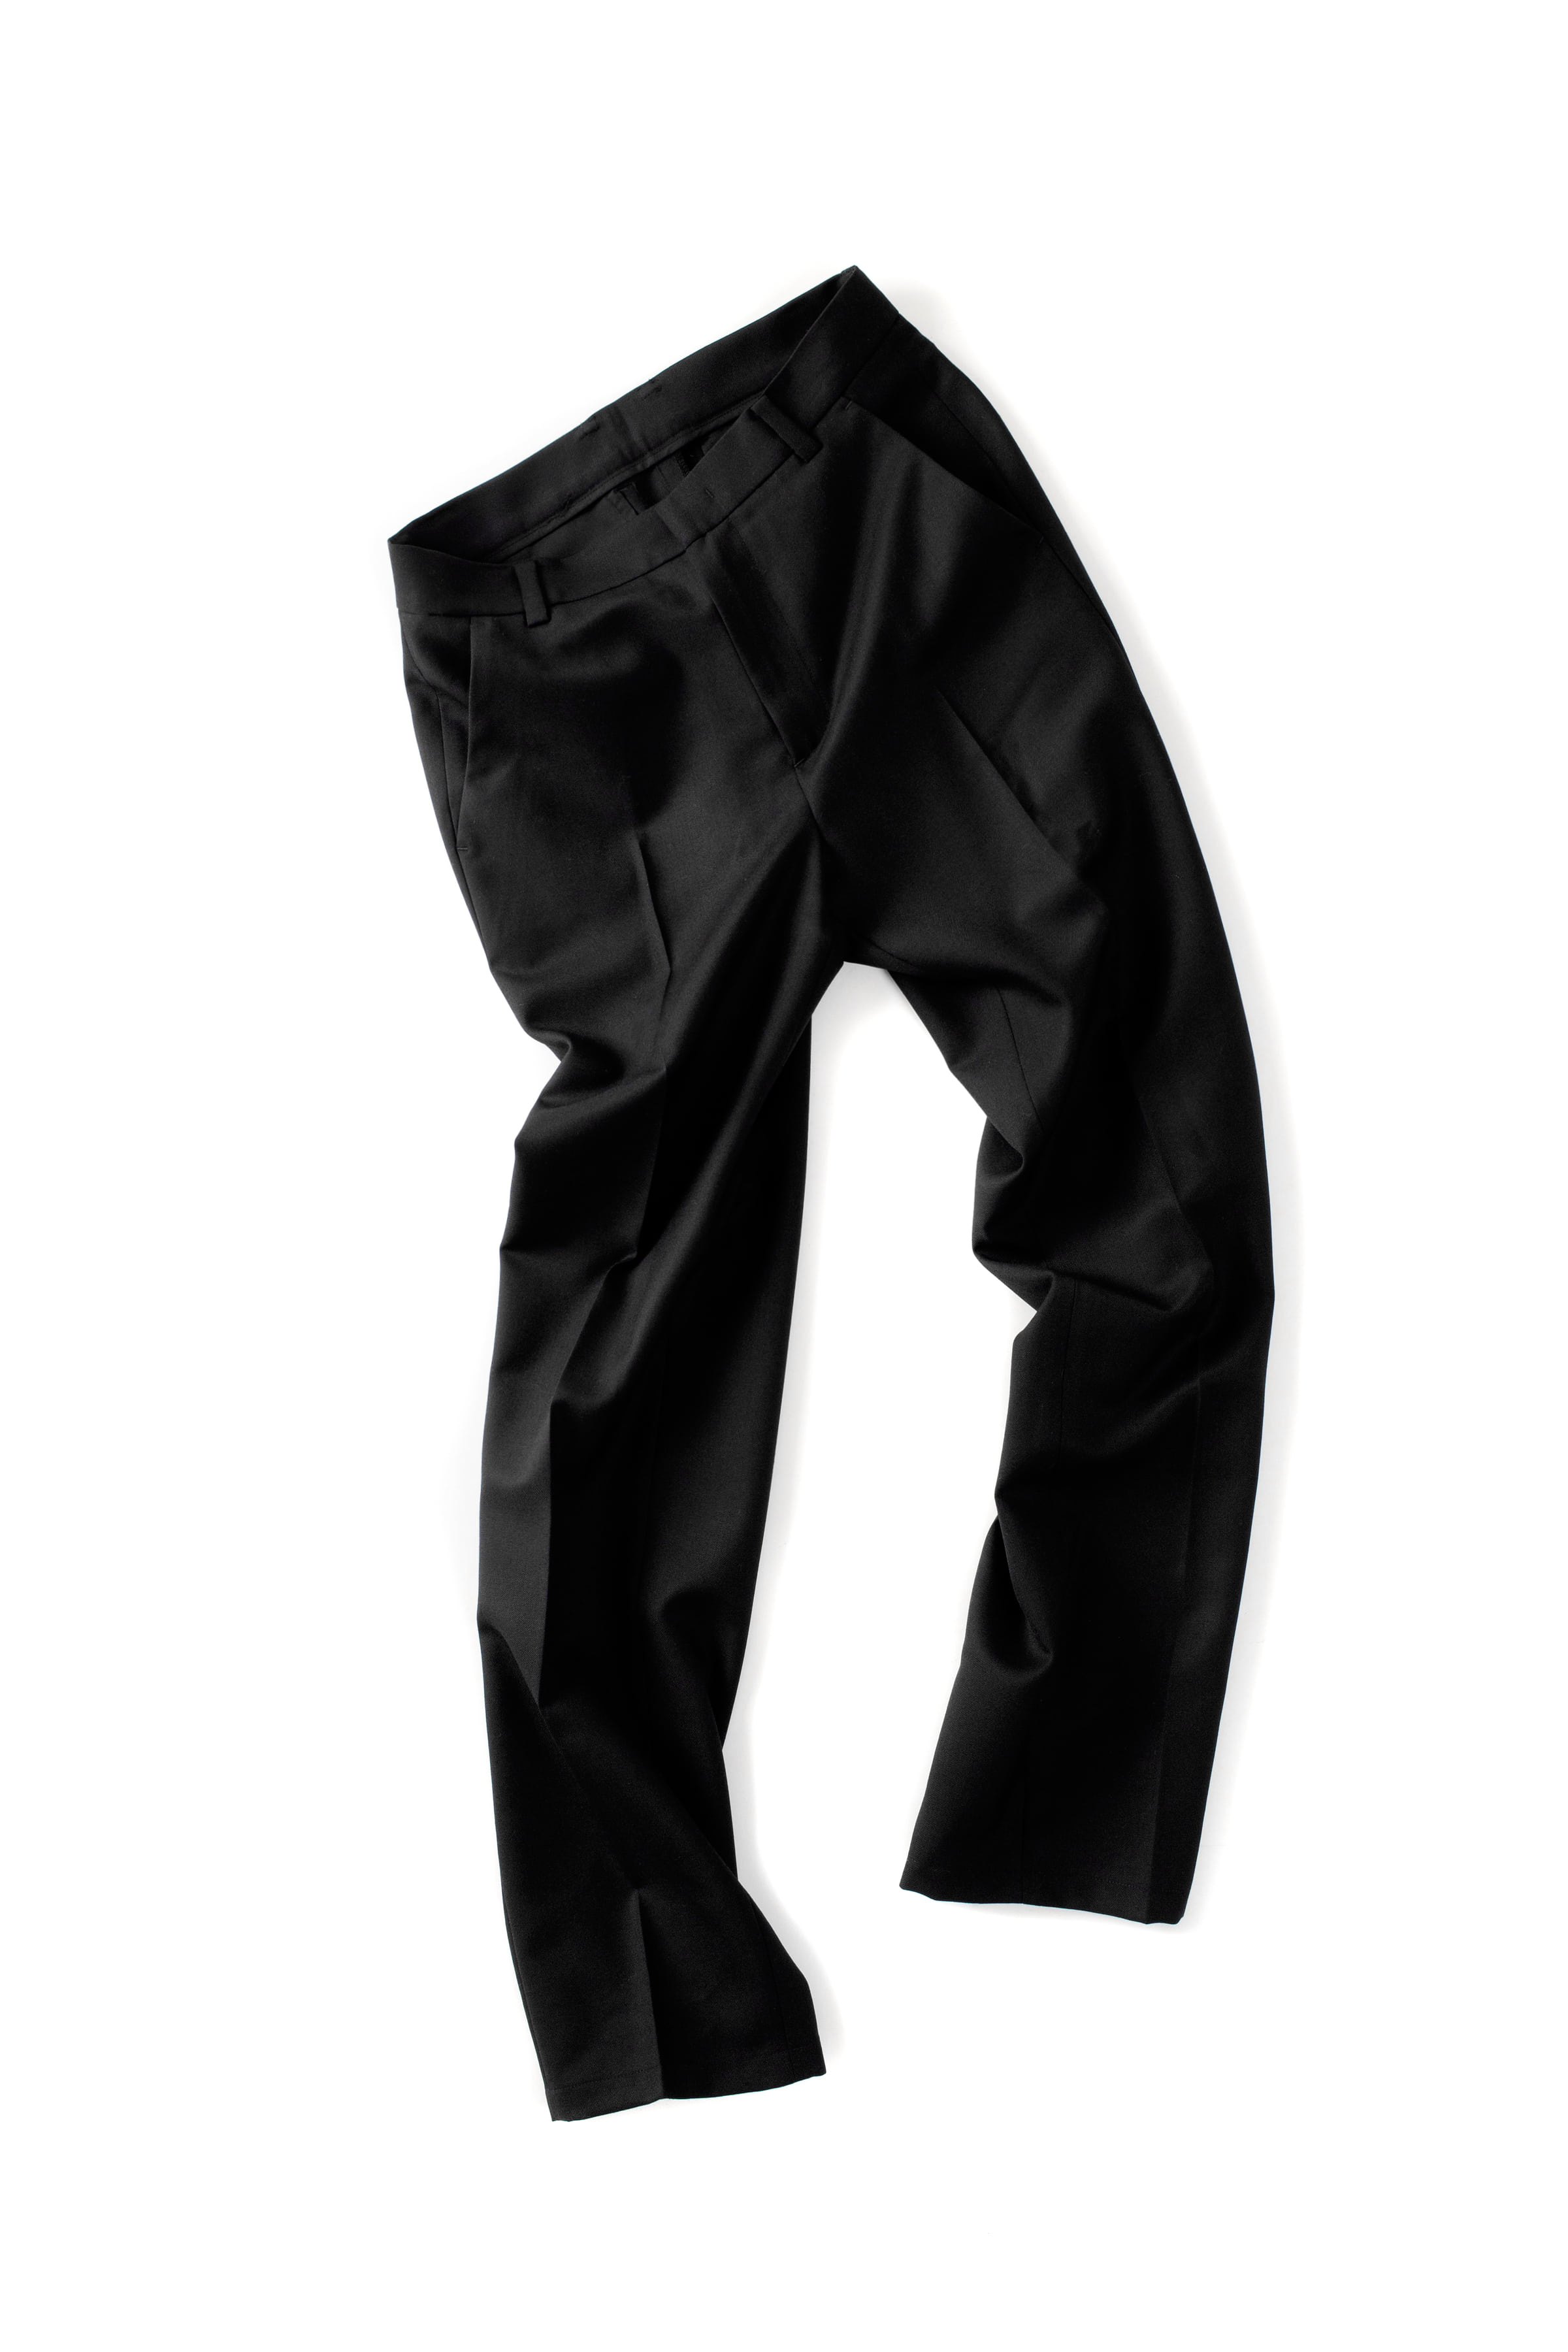 THE MUSEUM VISITOR : Graphic Trouser (Black)